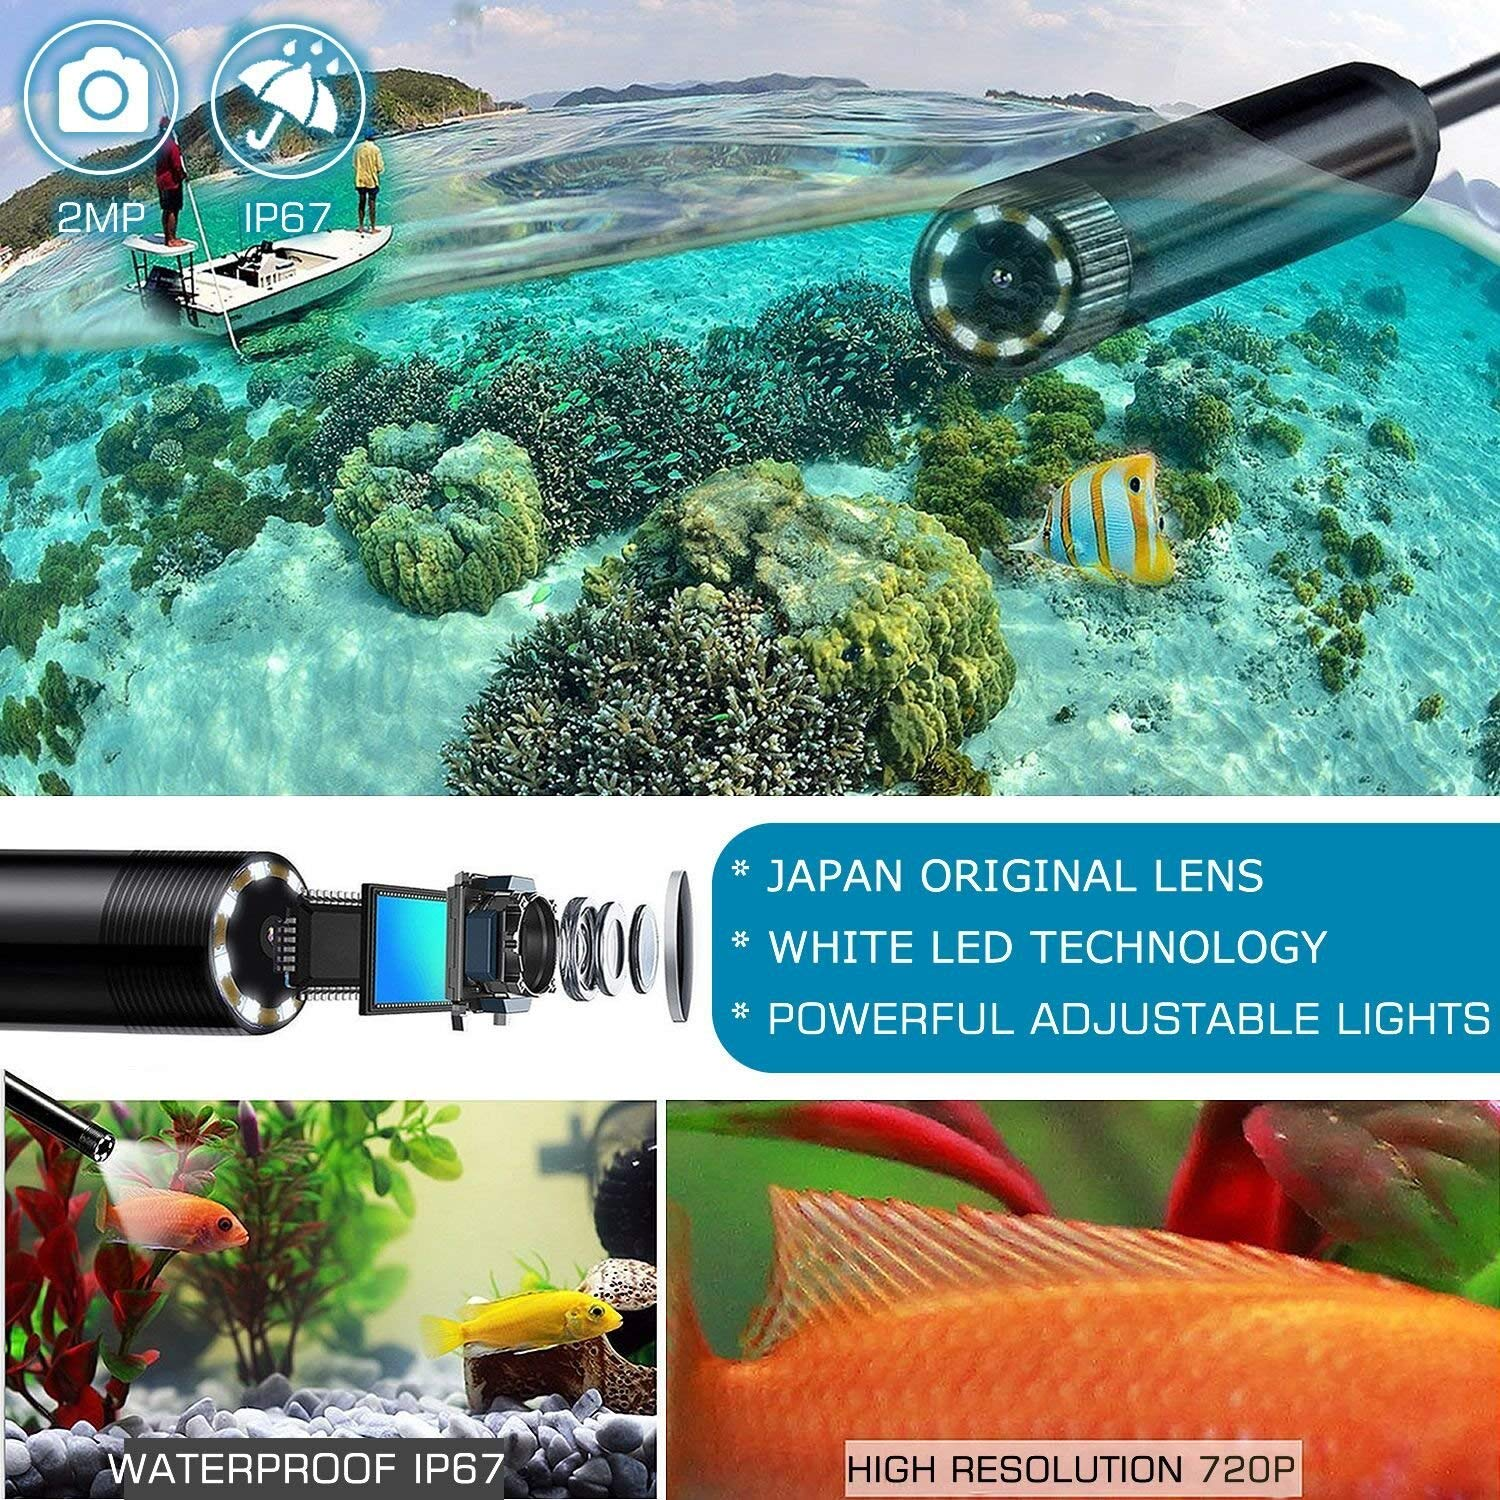 WiFi Endoscope Camera 16.4FT Focal Length HD 2.0 MP Waterproof Wireless Snake Camera With Flexible Grabber Pick-up Tool USB Borescope Camera for Android,IOS,iPhone 5M IPS IP SMART Inspection Camera